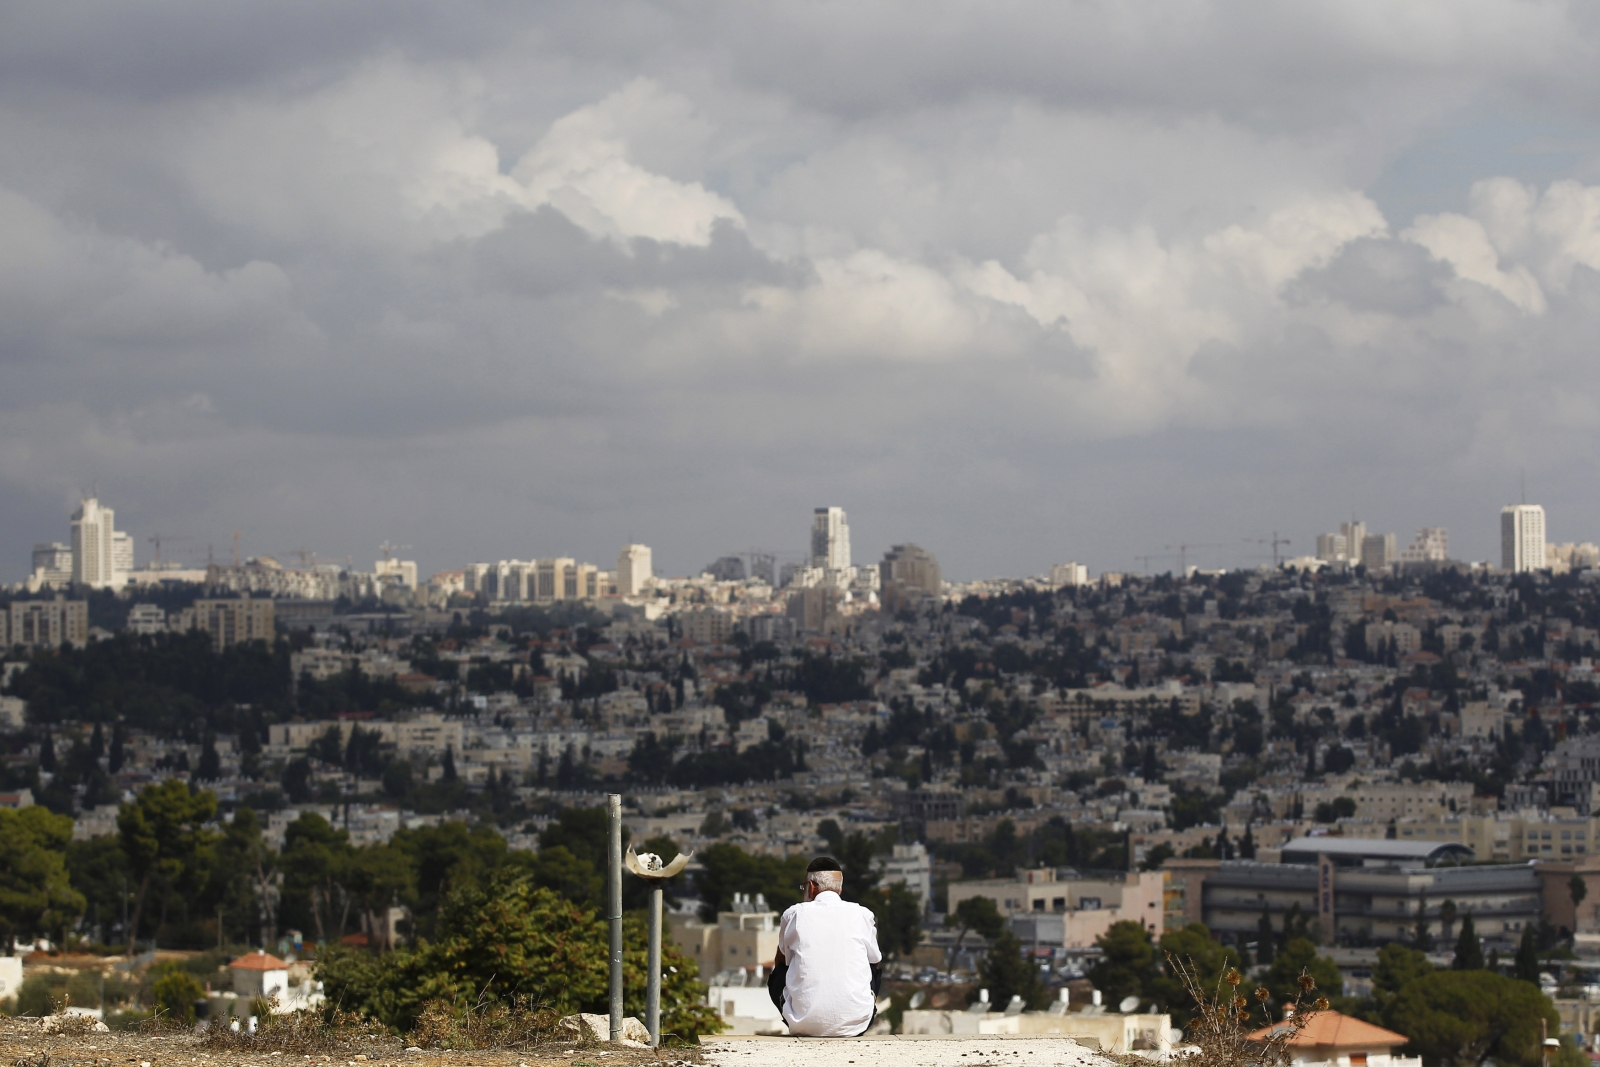 A view of Jerusalem is seen in the background as a man sits in Givat HaMato